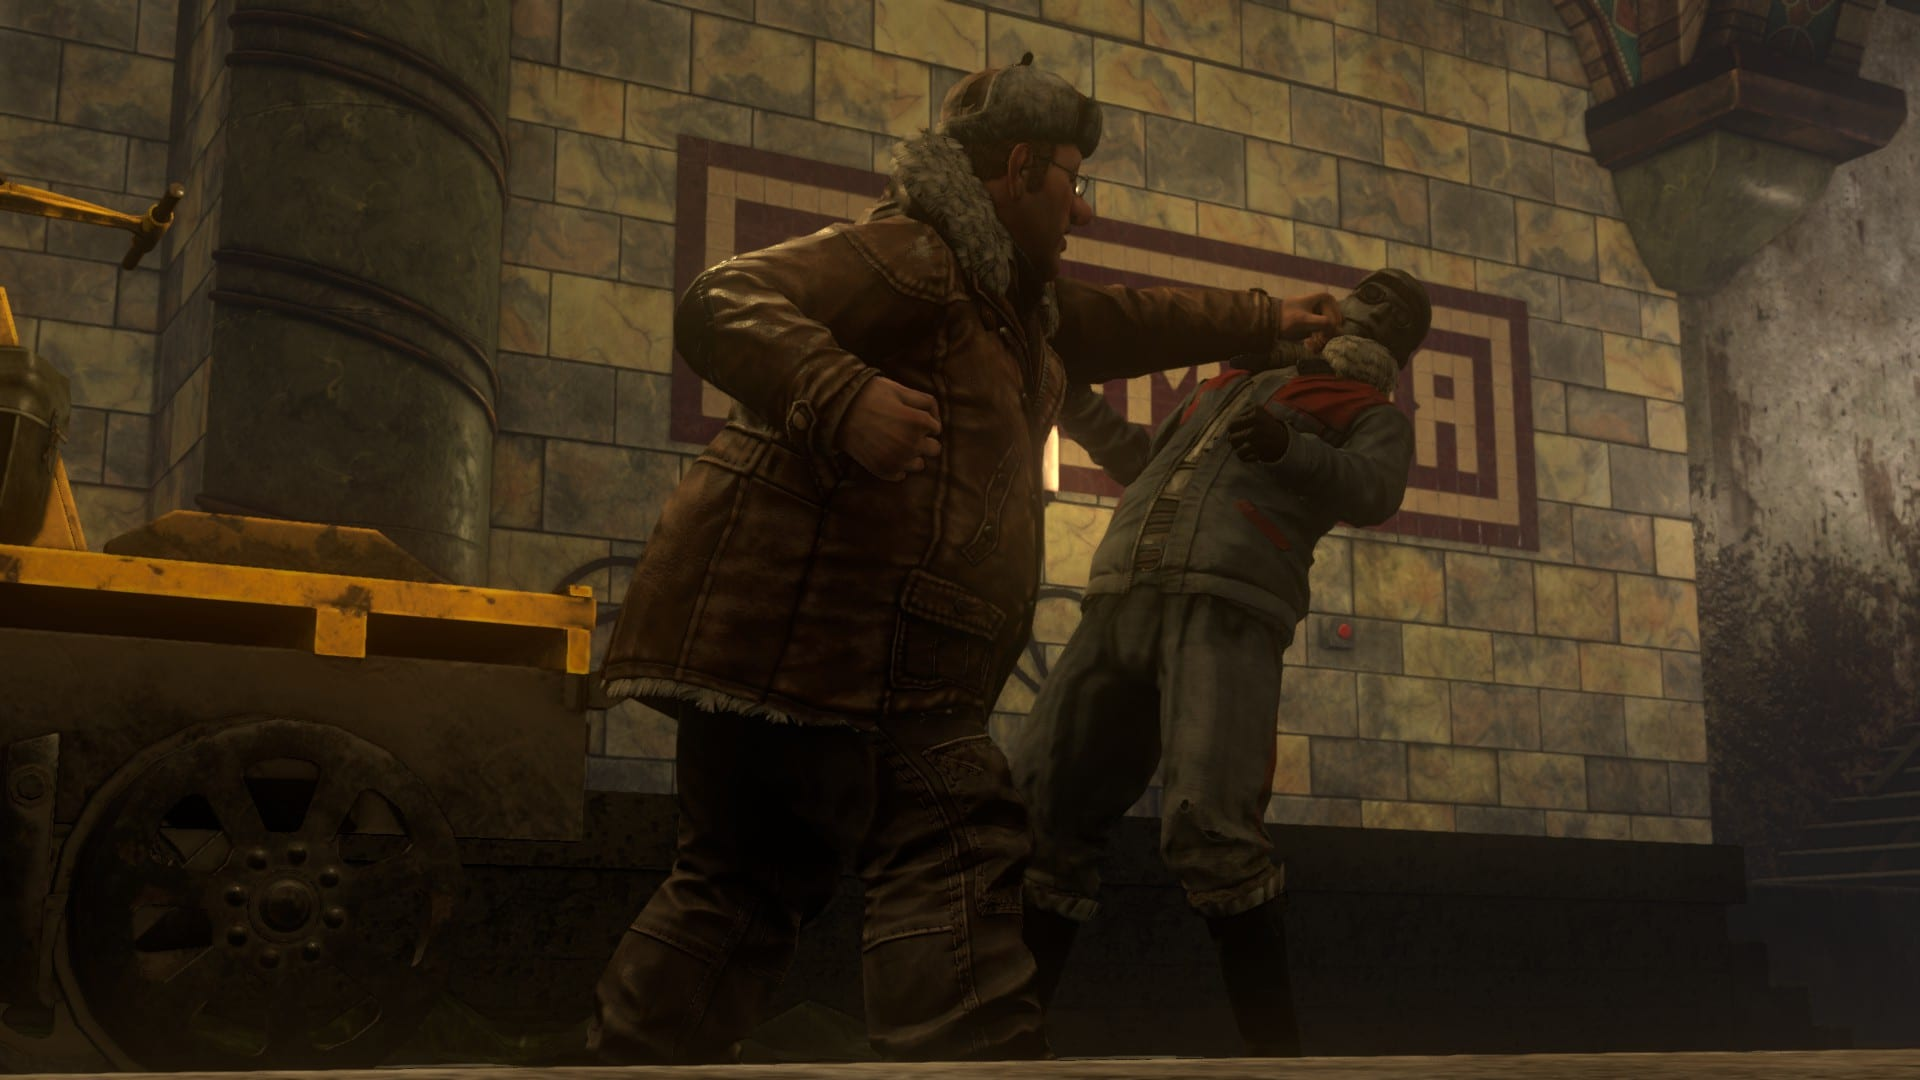 Syberia 3 - An Automaton with a plan Steam Key GLOBAL - 2